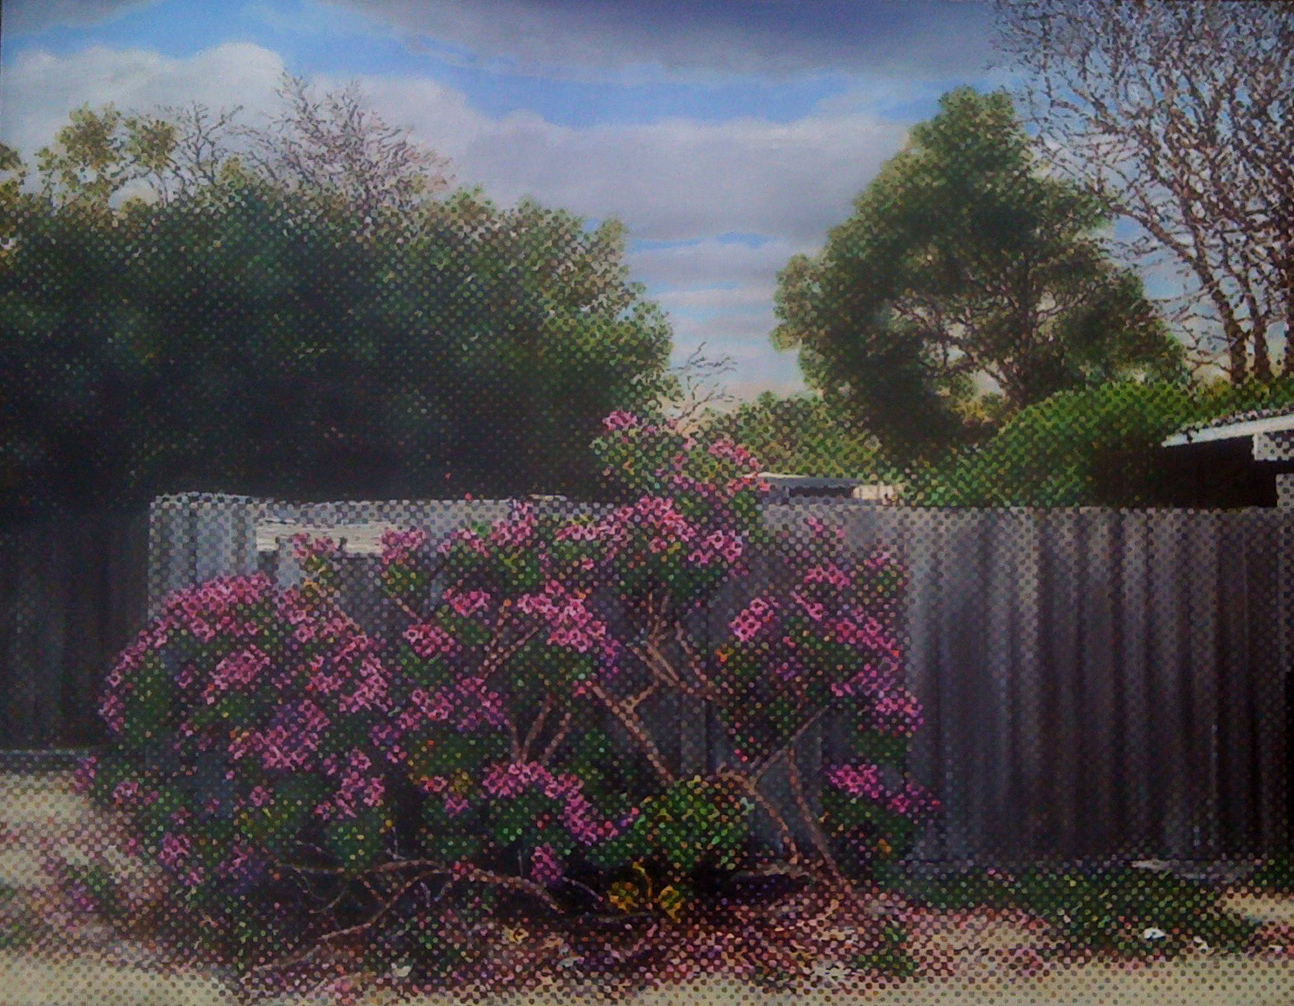 Marc de Jong, Edithvale Lane oil on canvas, 94 x 86 cm, available